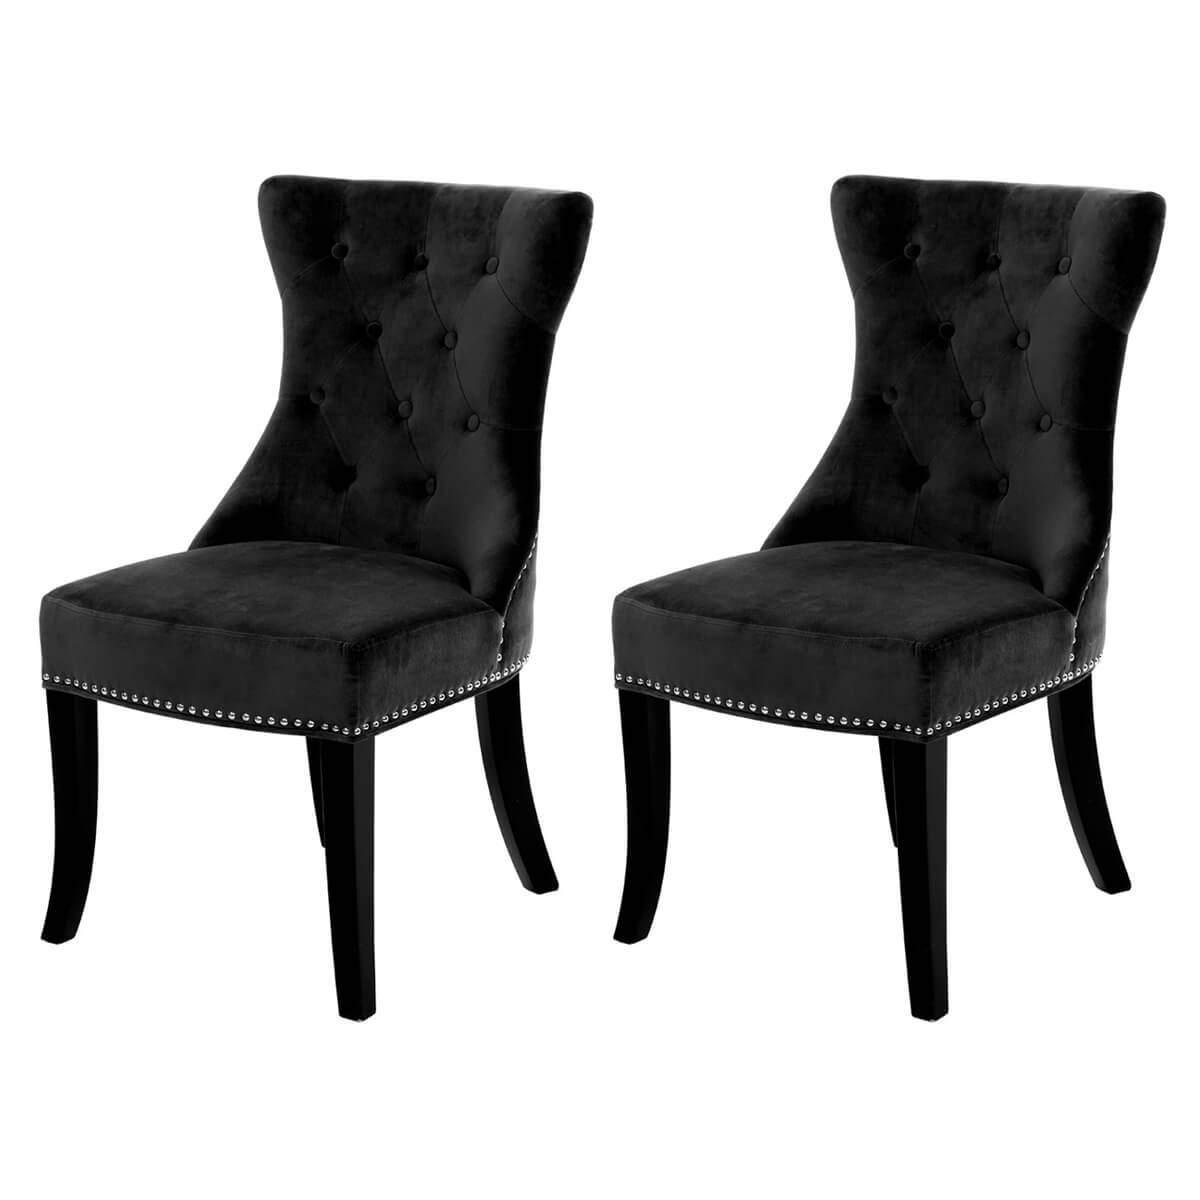 Regents Park Dining Chairs Buttoned Black Velvet